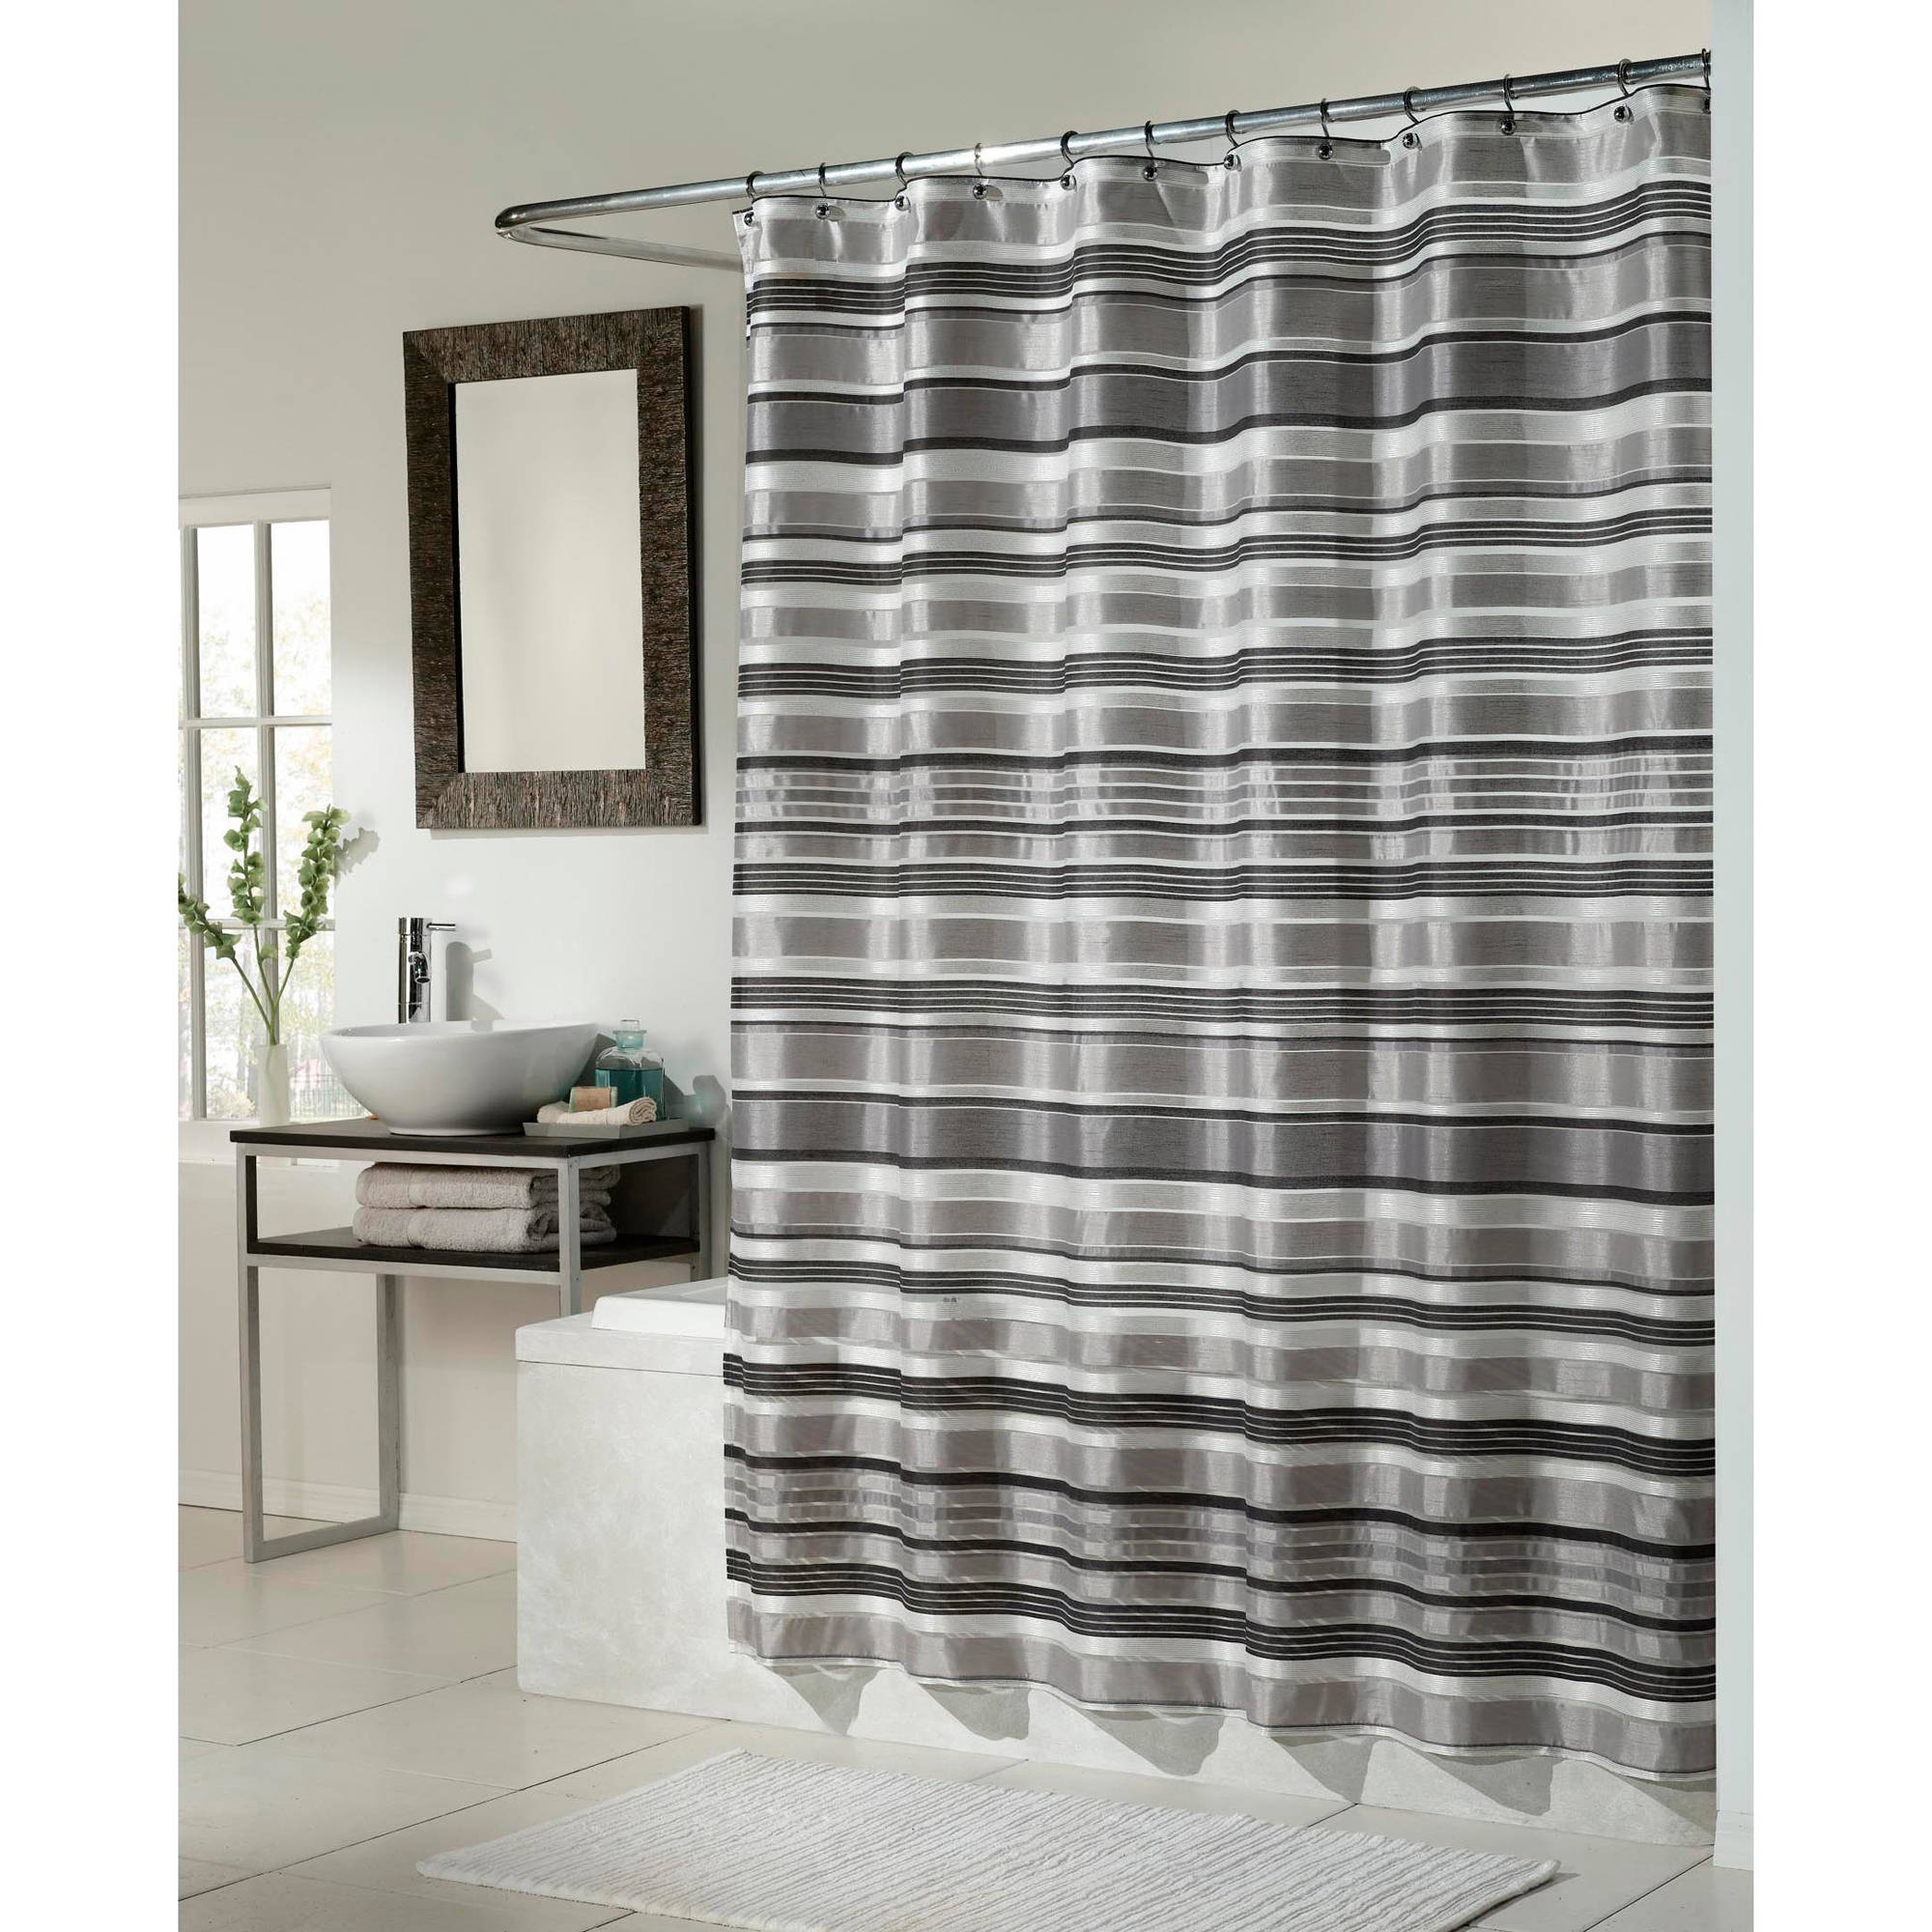 Glacier Fabric Shower Curtain Black Silver Combination Walmart throughout measurements 2000 X 2000